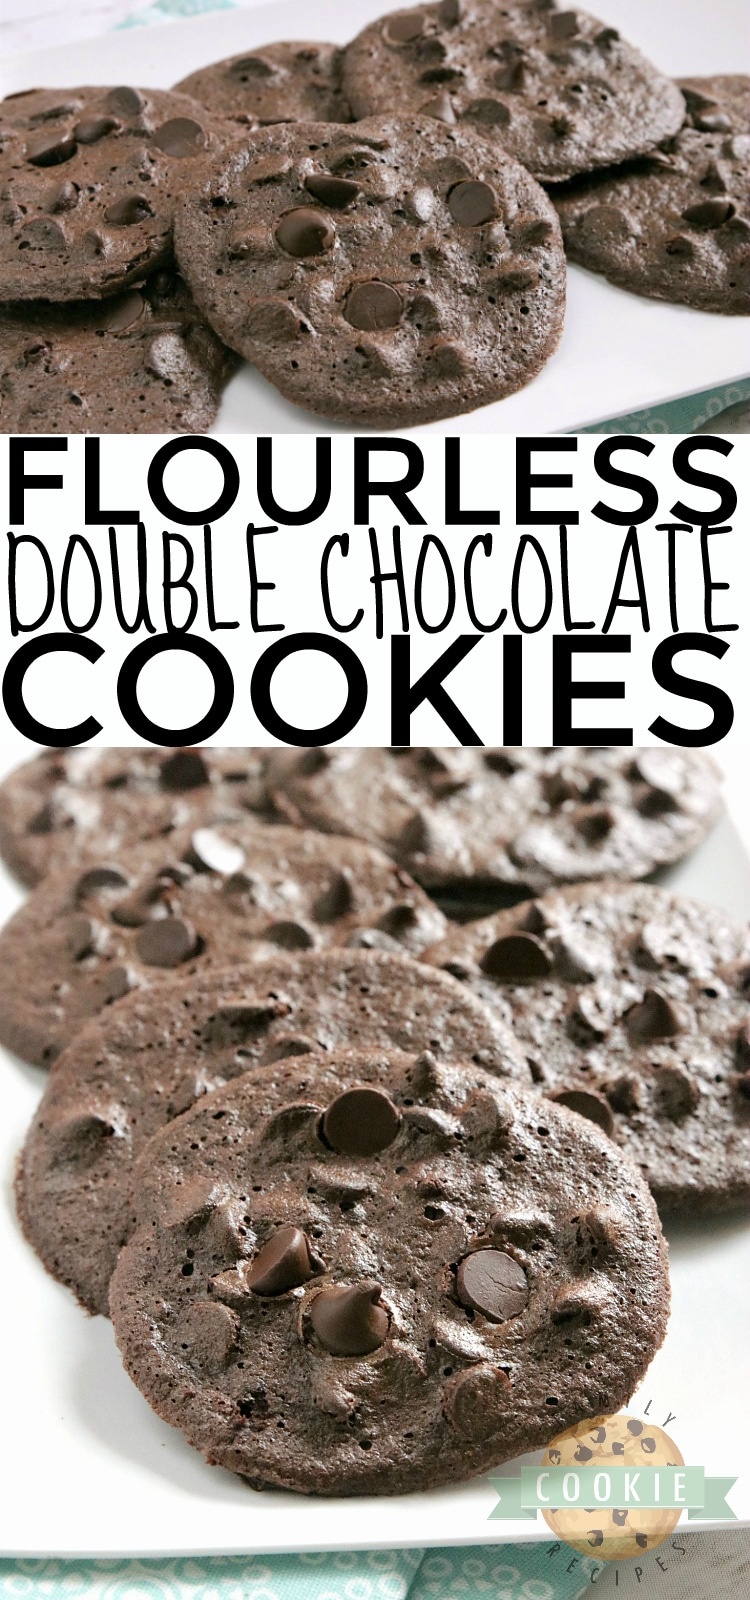 Flourless Double Chocolate Cookies are soft, fudgy and have absolutely no flour in them! The perfect flourless cookie recipe, whether you need a gluten-free cookie or even if you just don't have any flour on hand! via @buttergirls